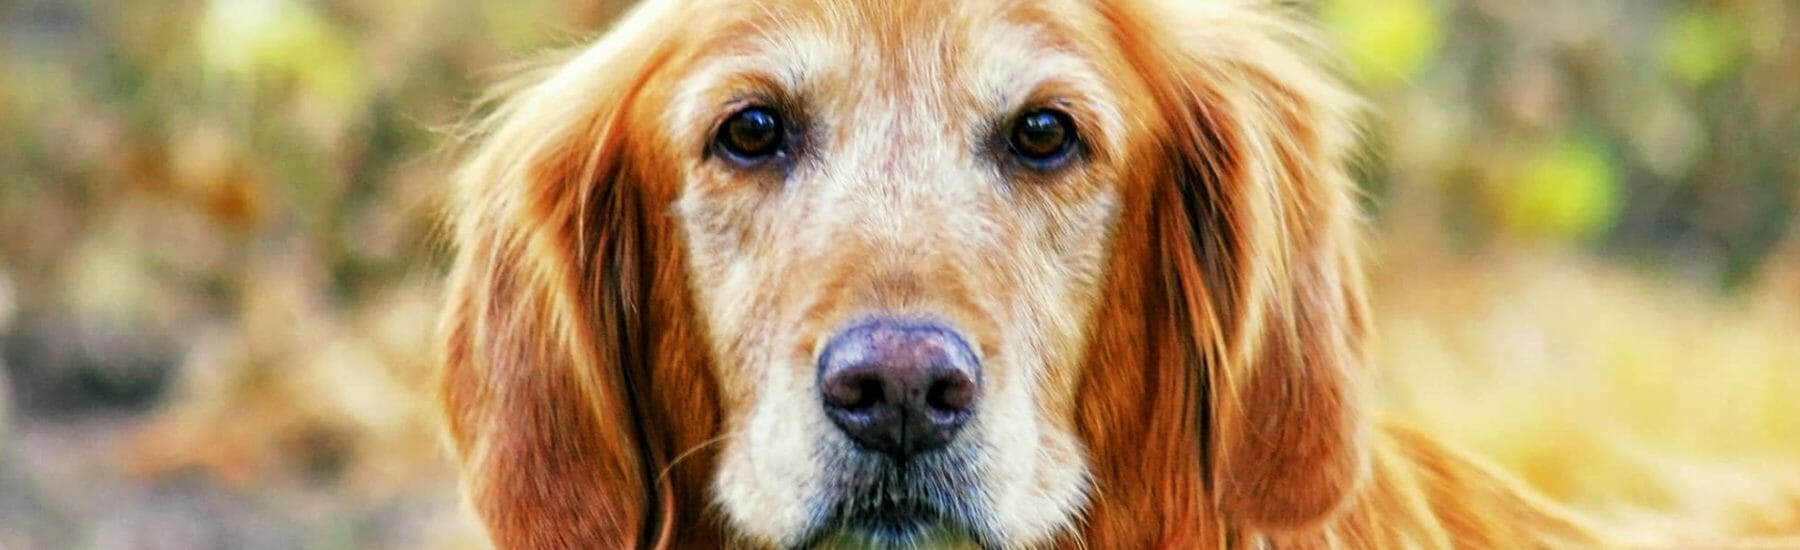 Senior Care Services for Pets